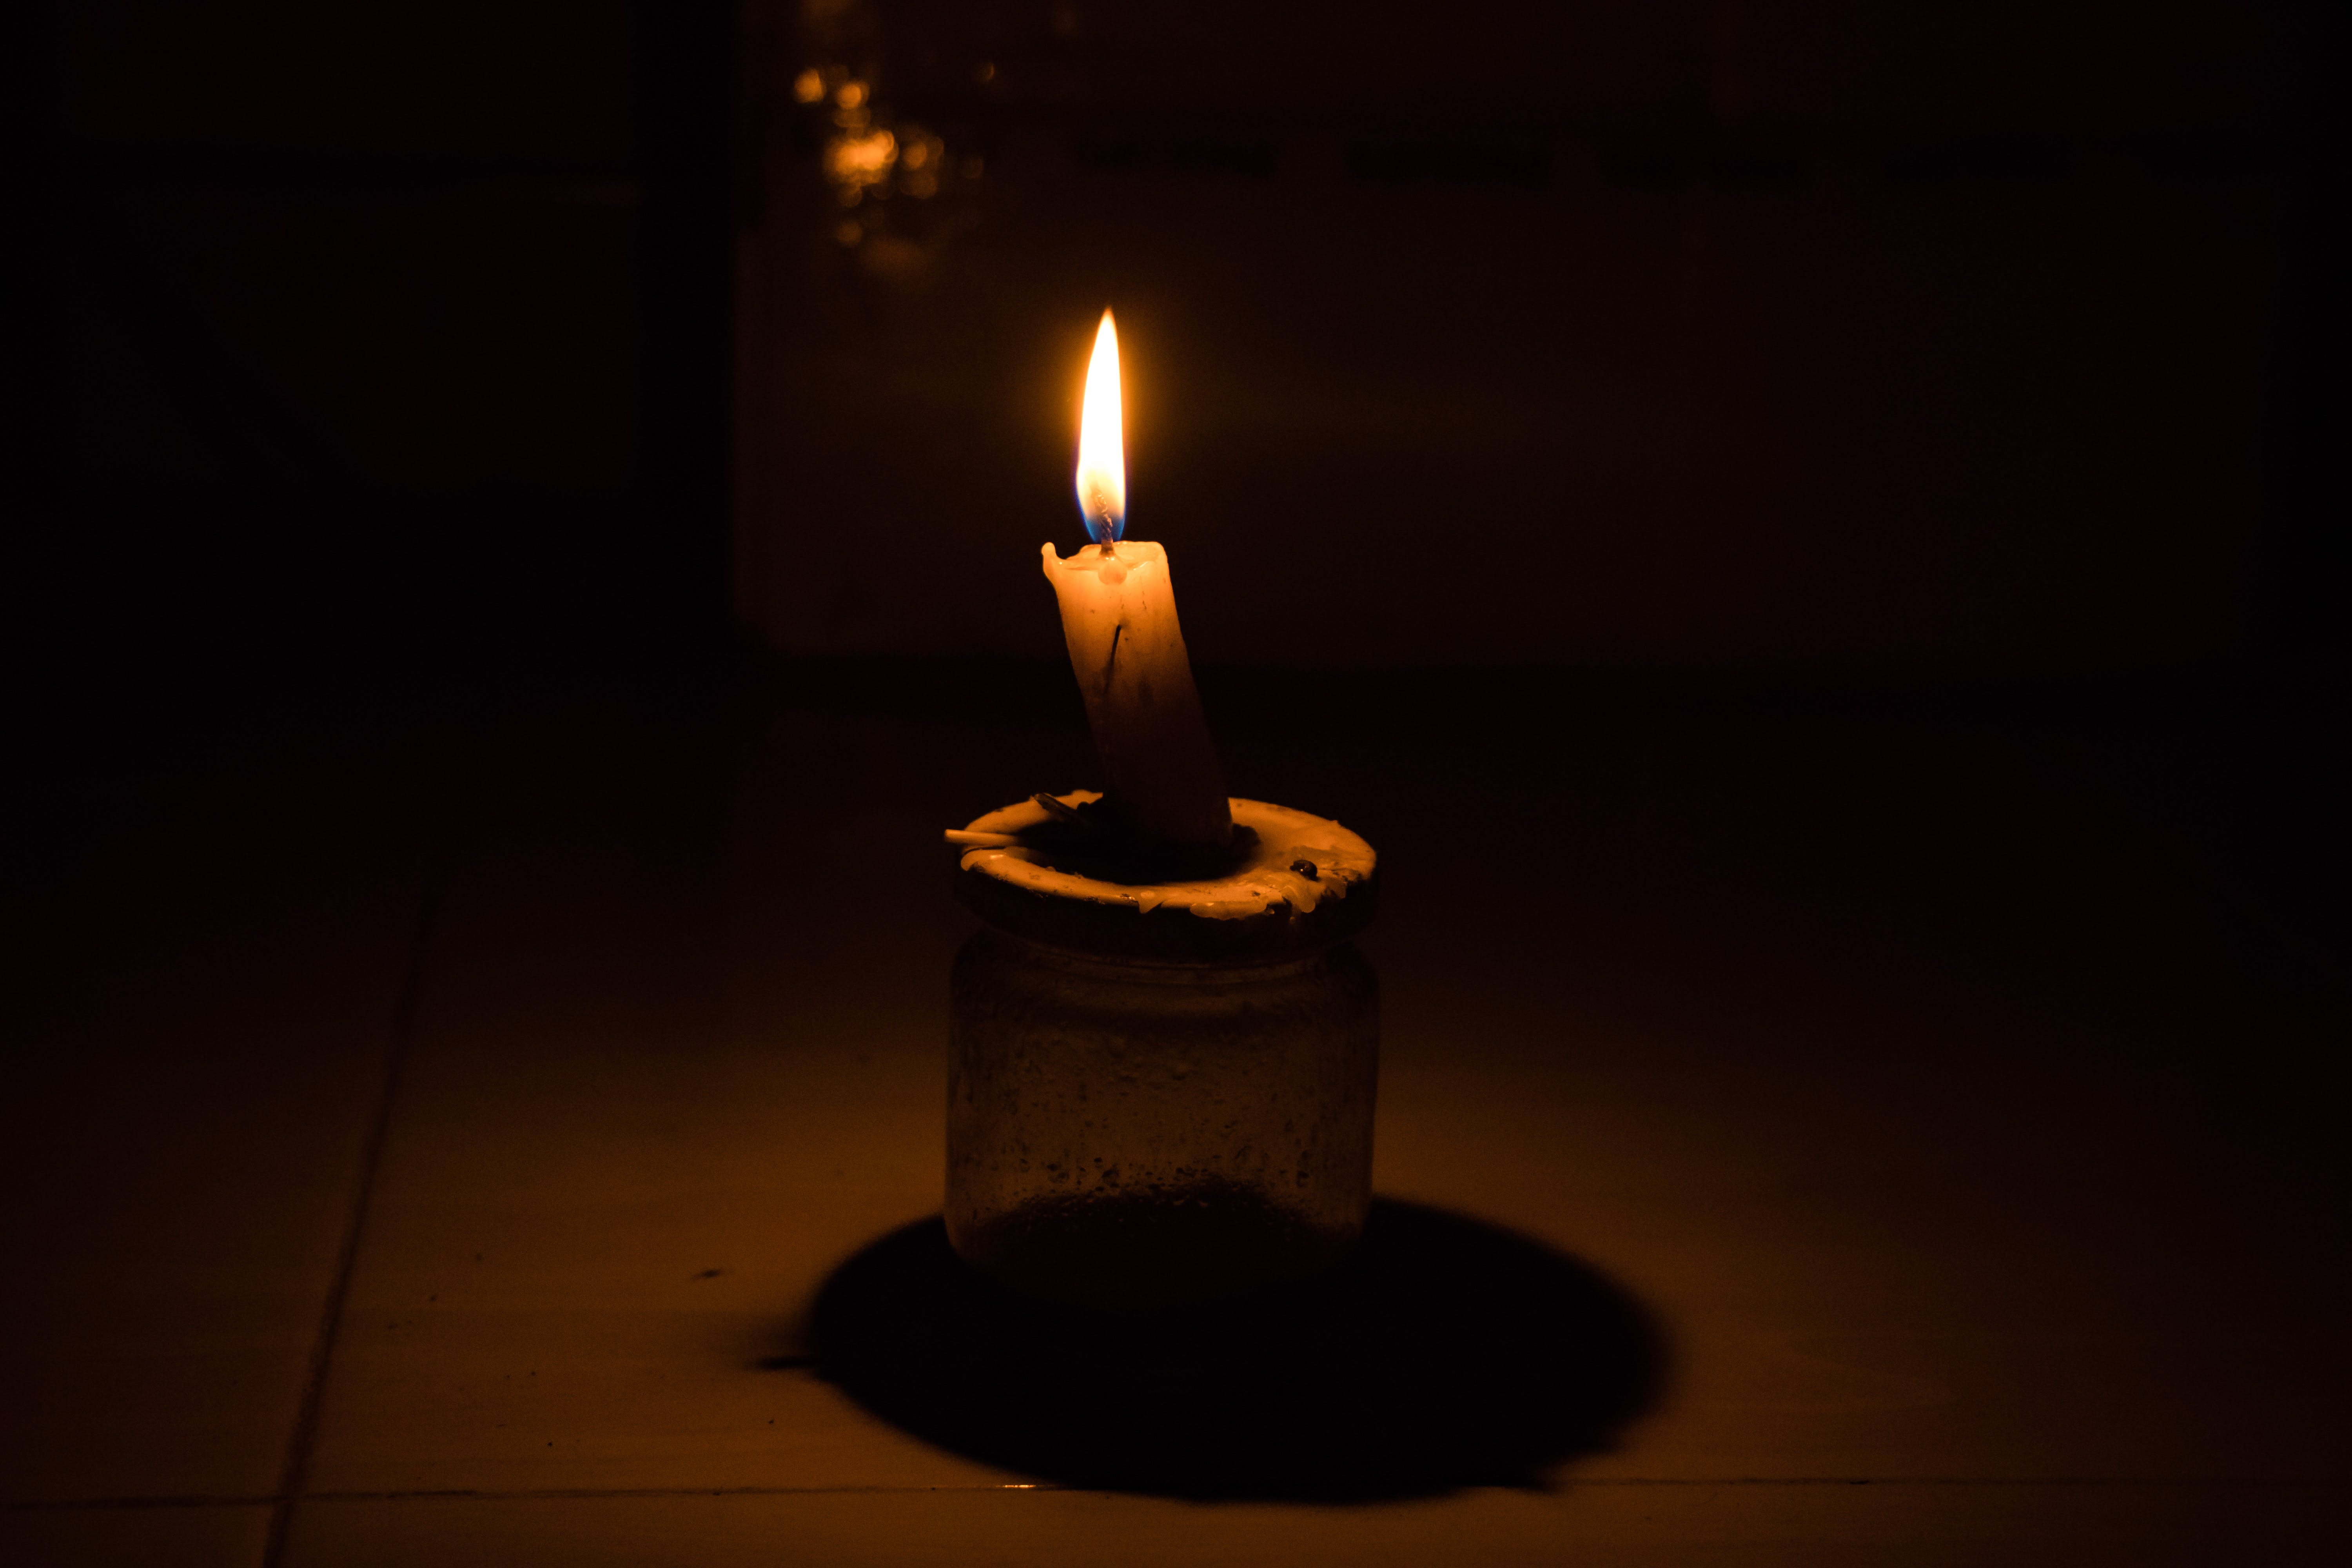 Free stock photo of Candle light in the dark